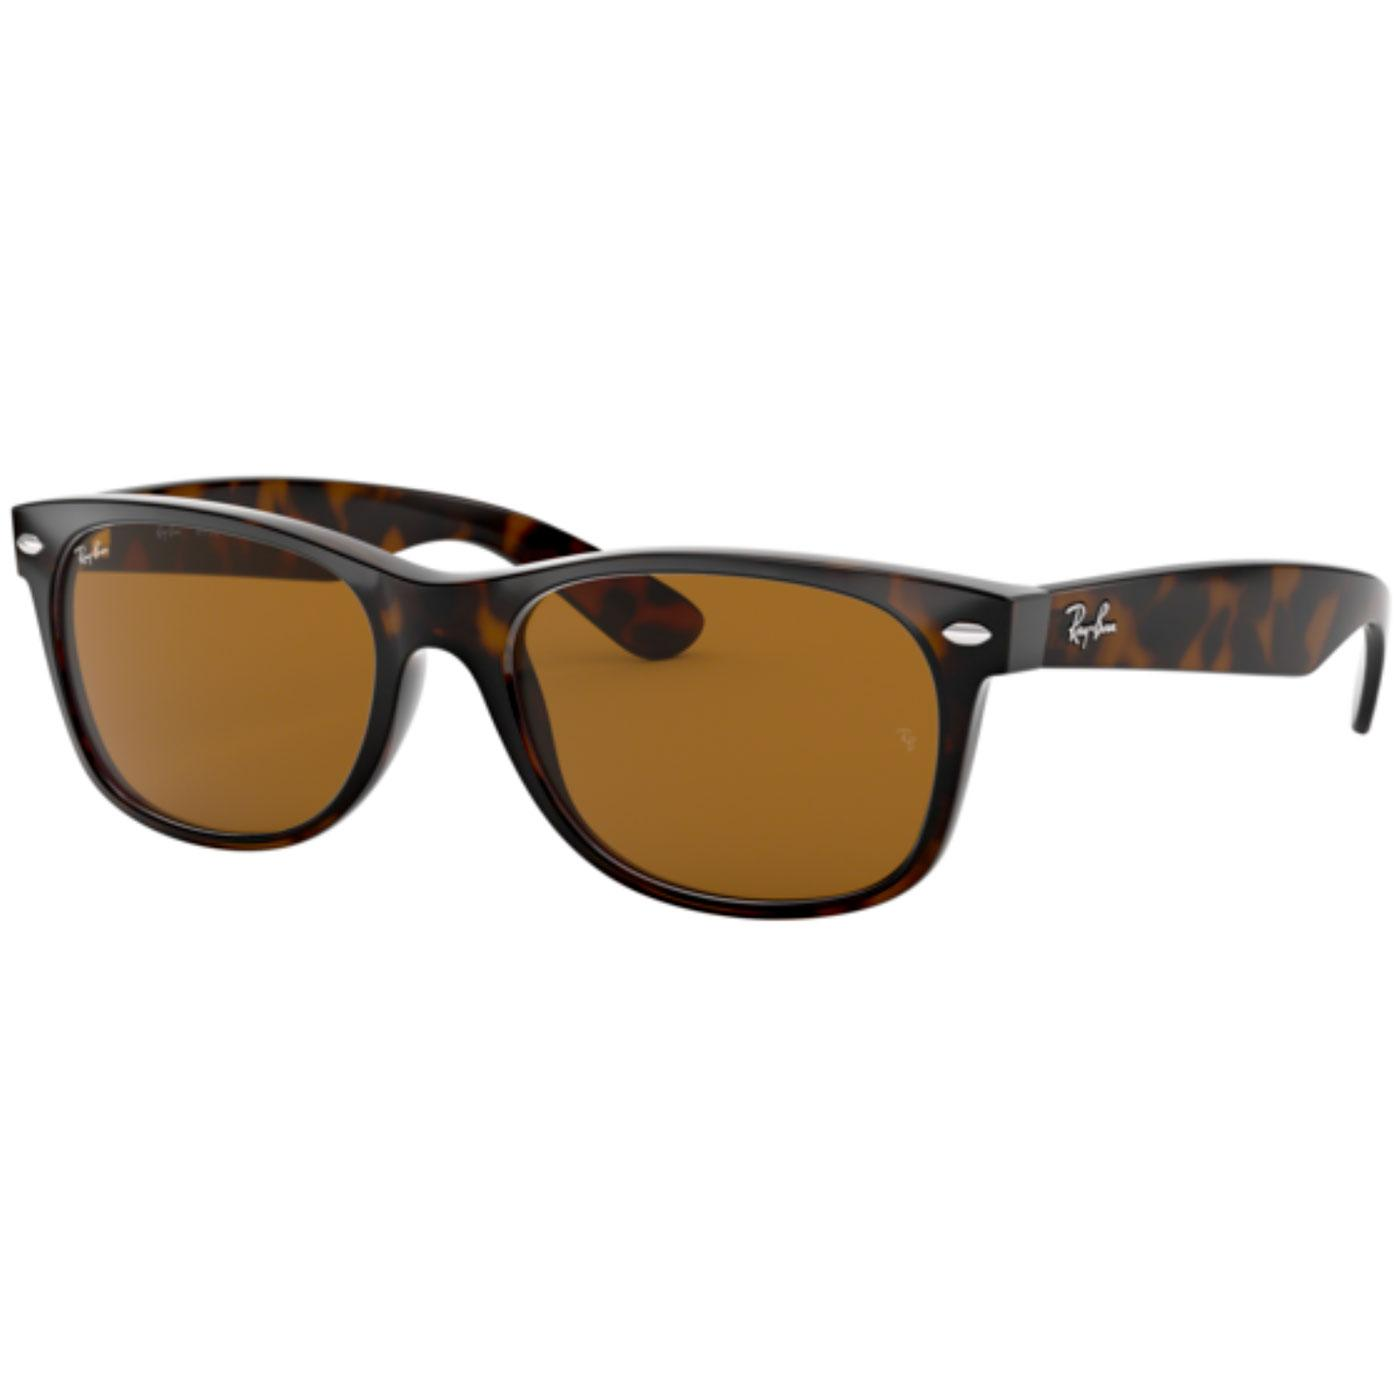 New Wayfarer RAY-BAN Retro Light Havana Sunglasses